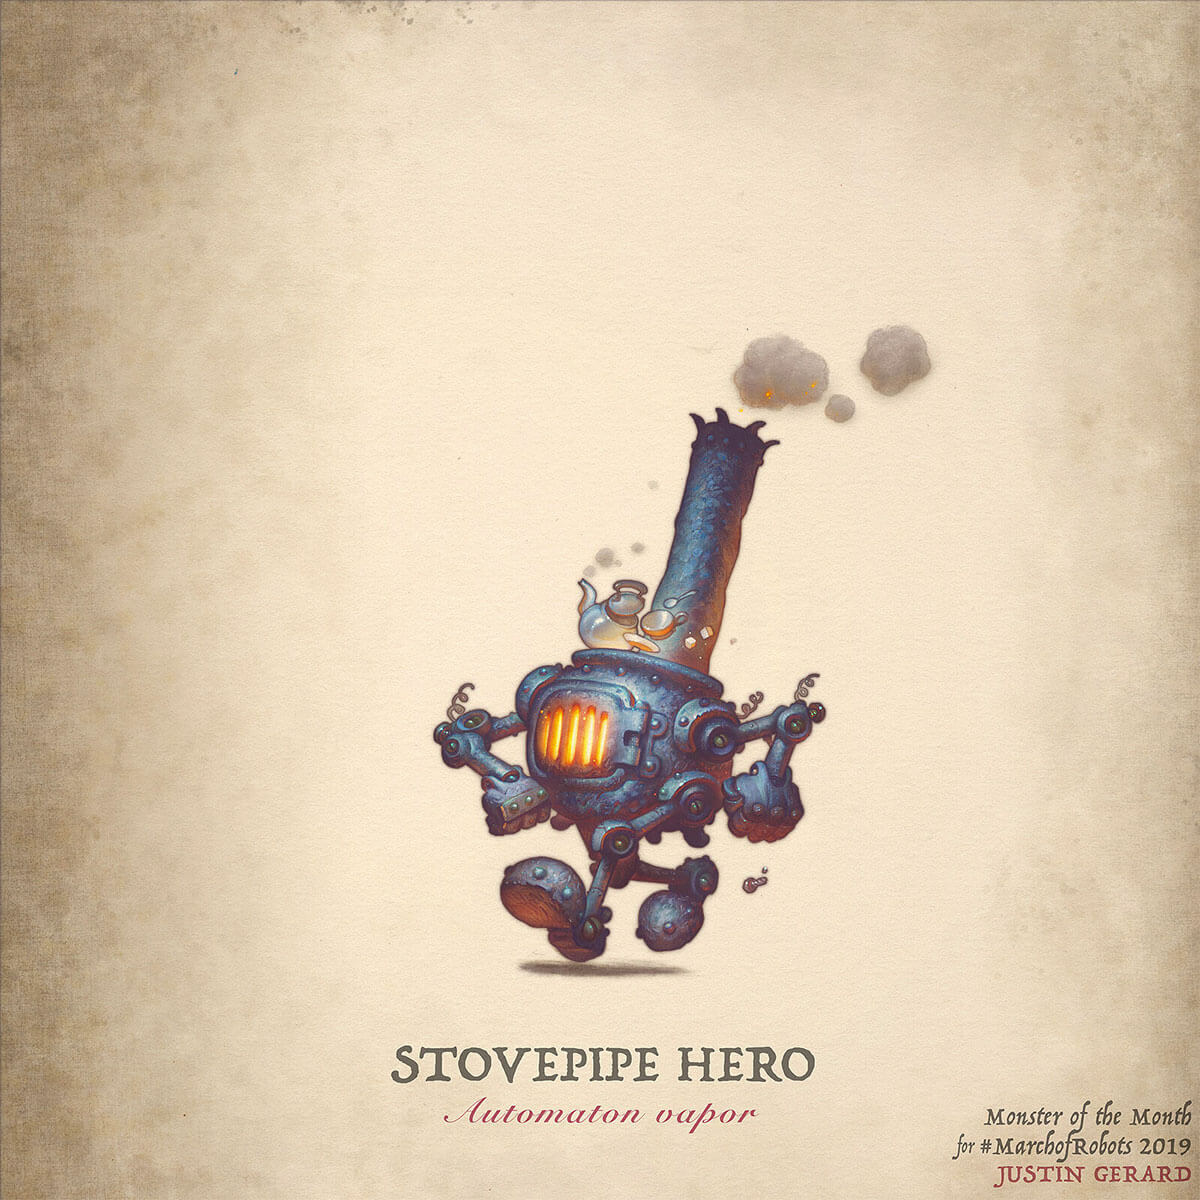 Stovepipe Hero by Justin Gerard